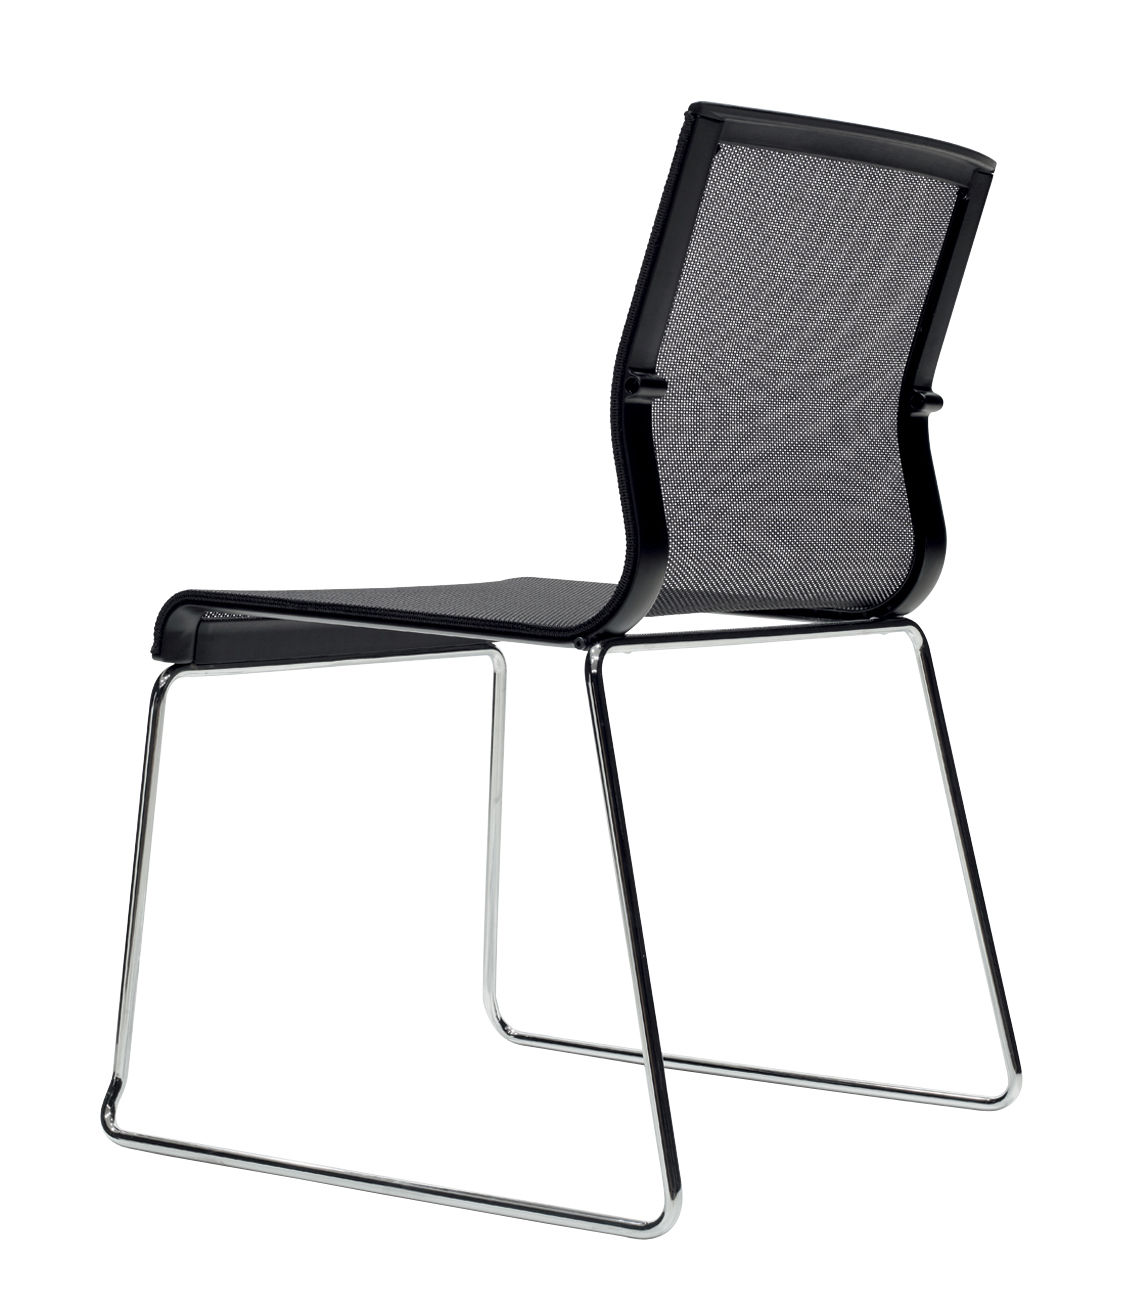 Stick Chair Stacking Chair Fabric Seat Black Mesh